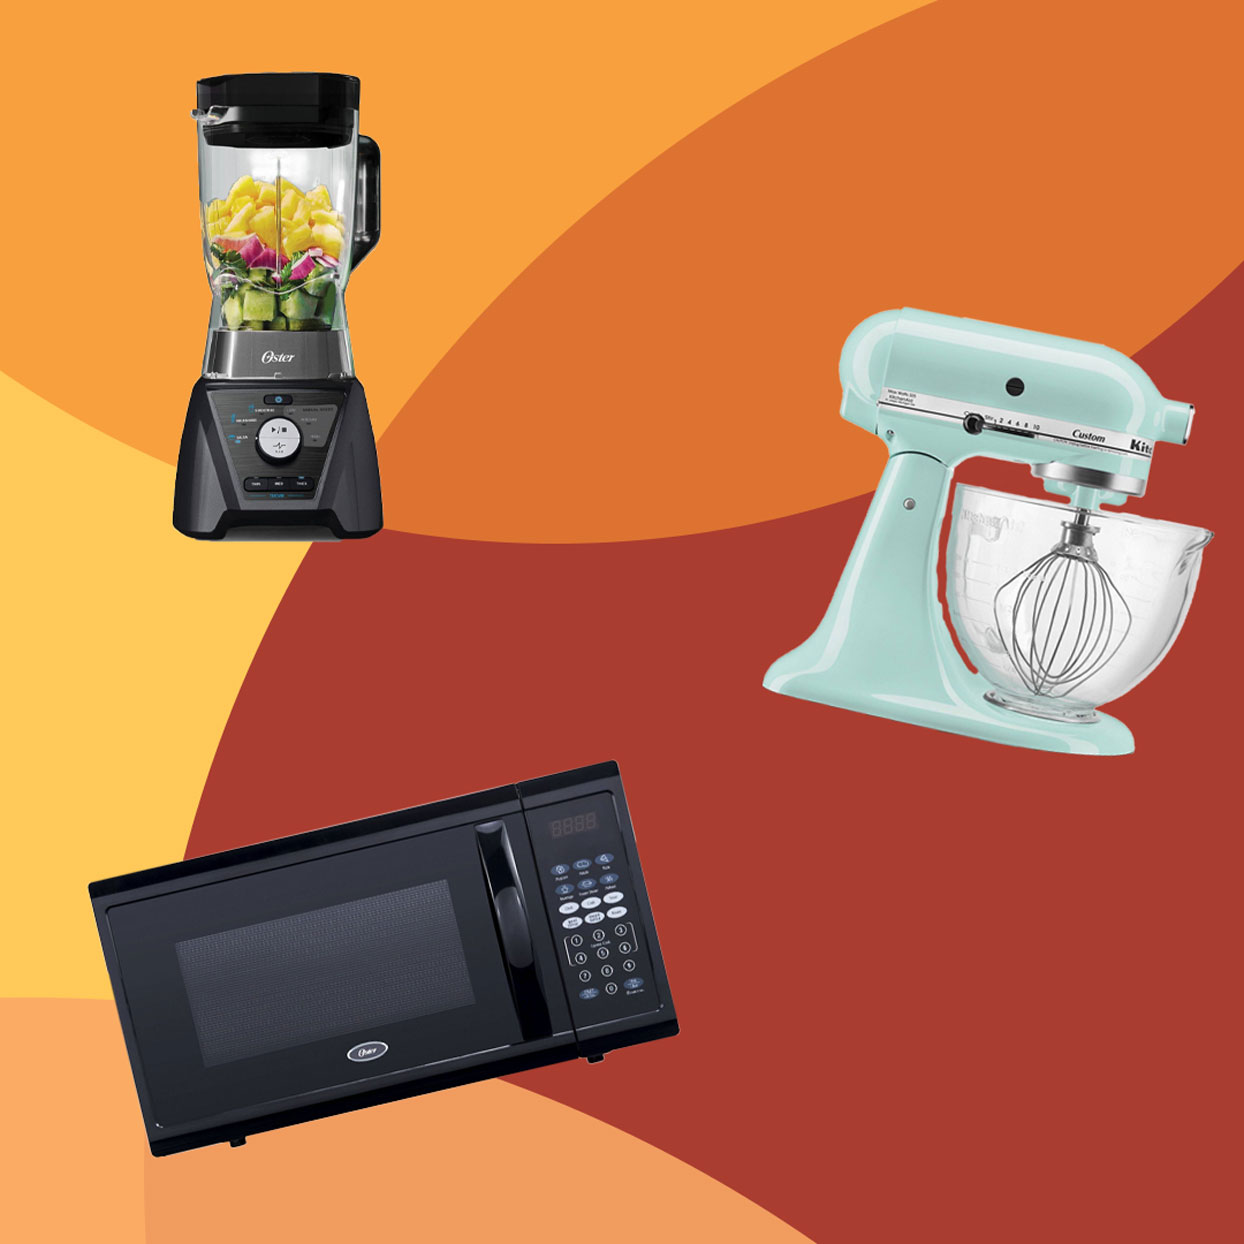 Oster microwave, Oster blender and KitchenAid mixer